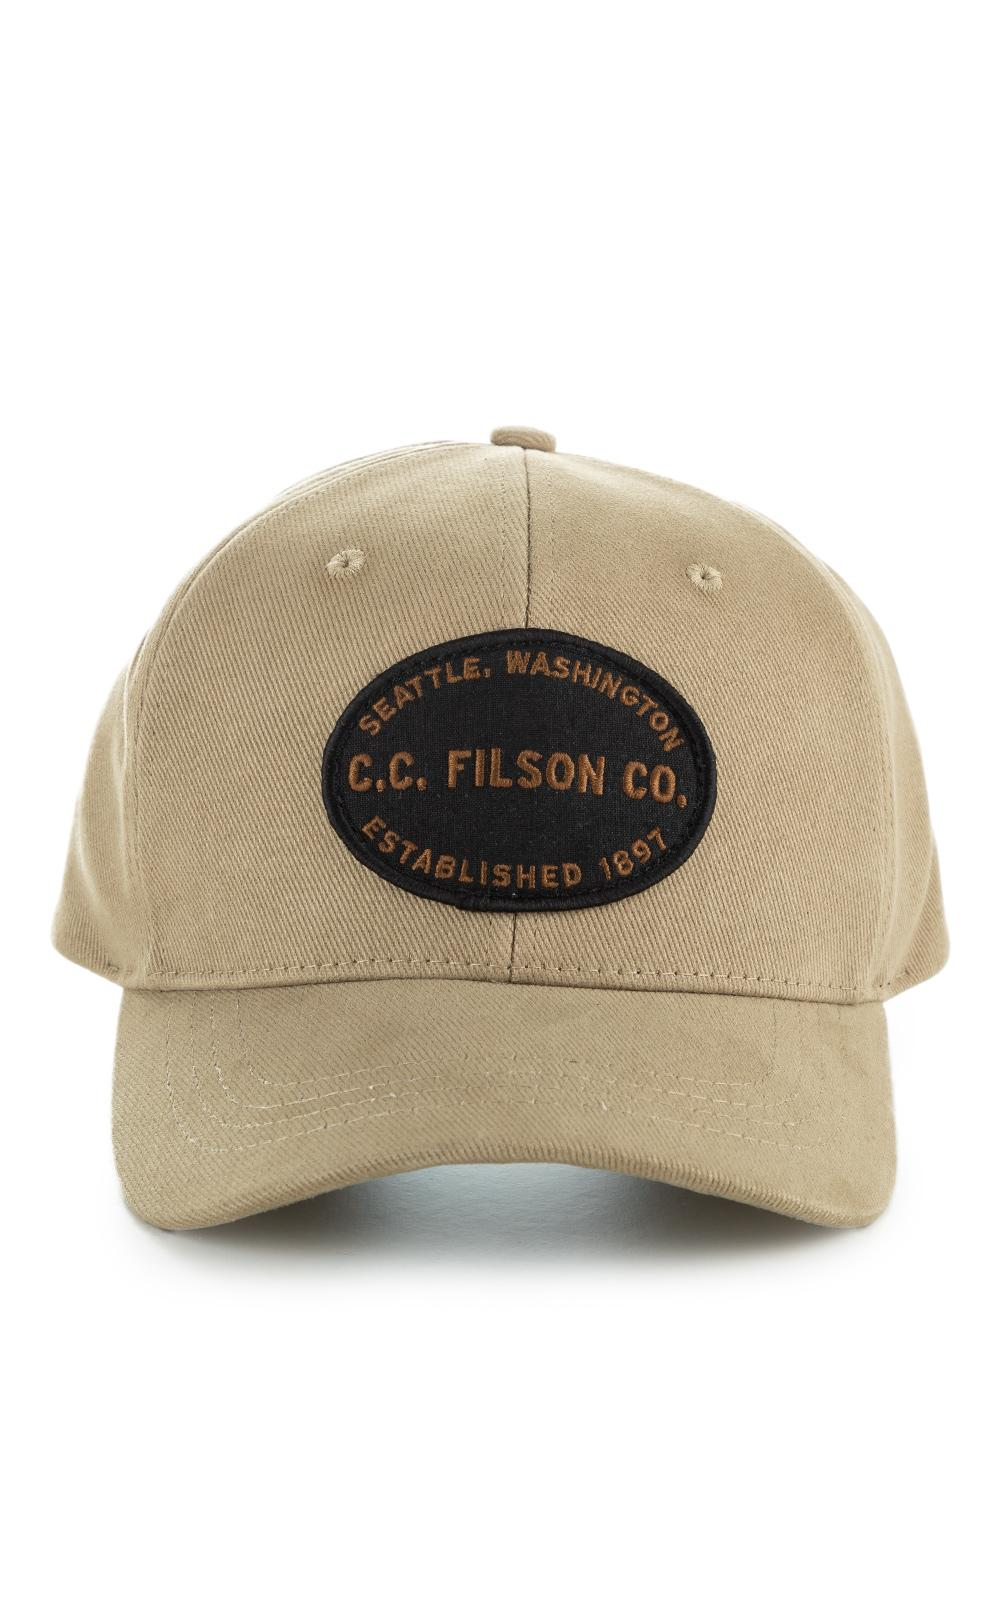 97bfe4a4051c0 Filson Twill Logger Cap Beige in Natural for Men - Lyst